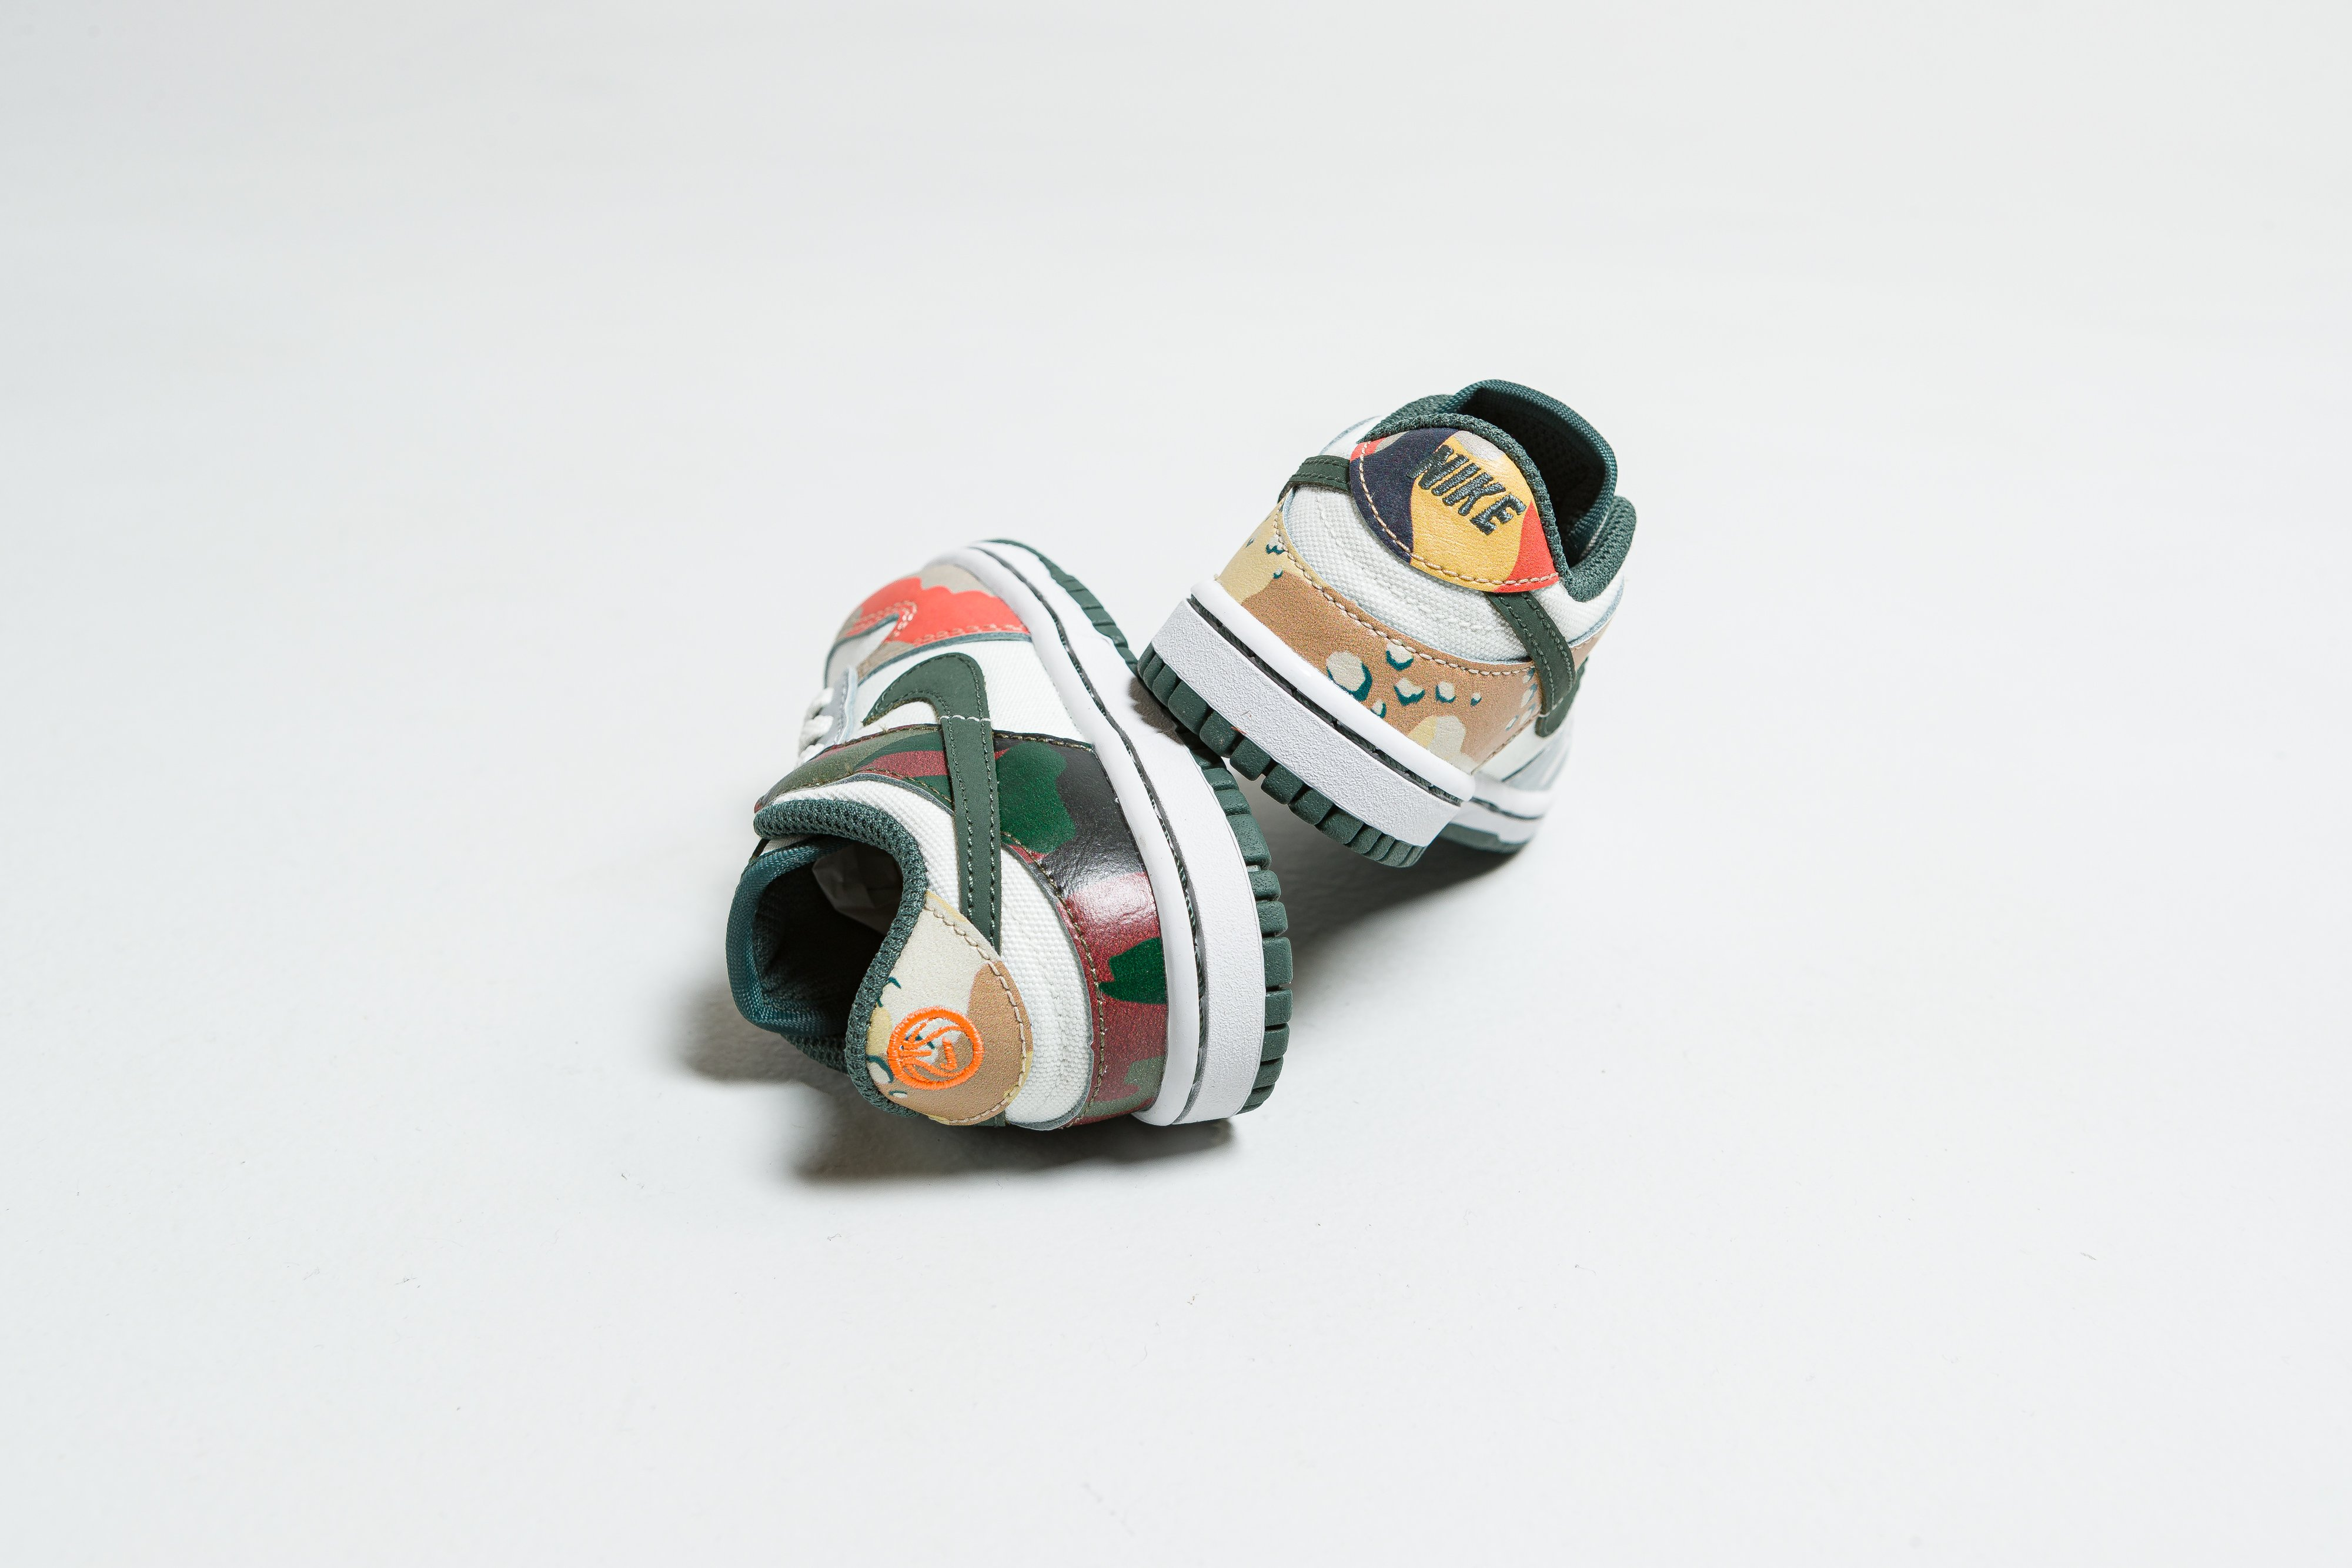 Nike - Dunk Low SE (TDE) - Sail/Vintage Green - Up There